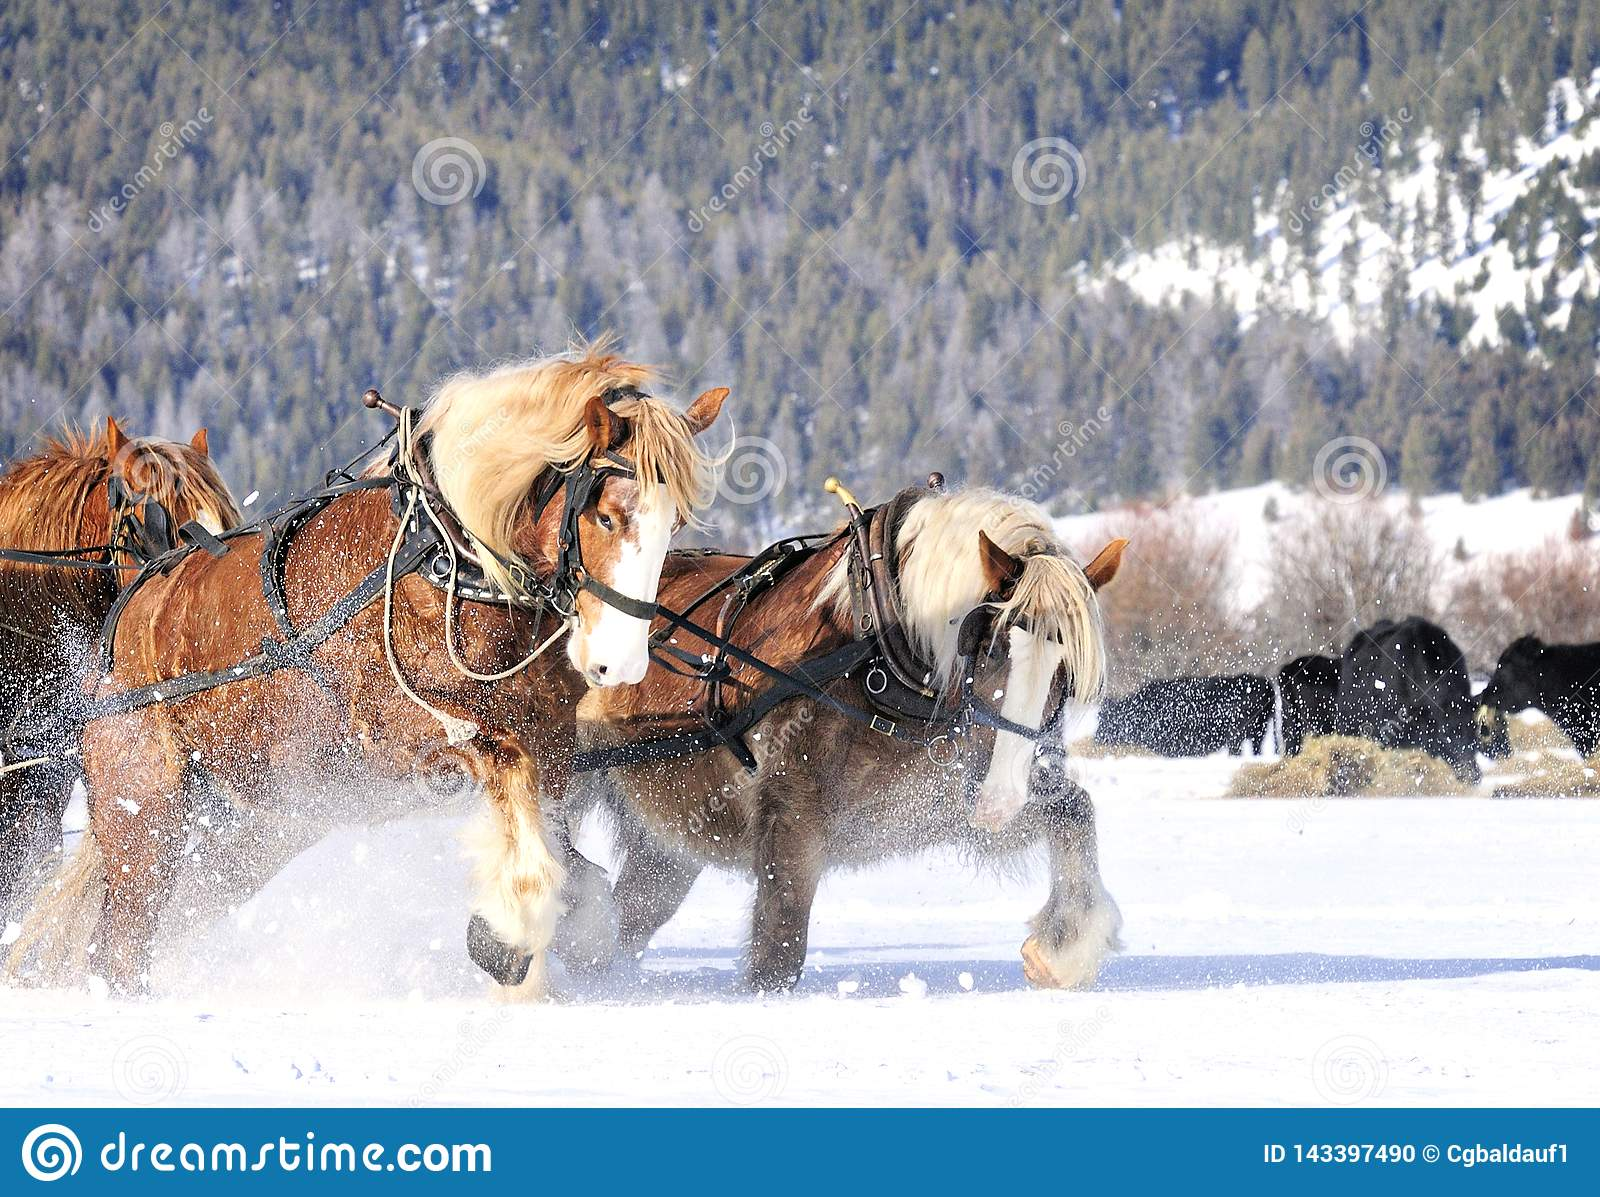 Draft Horses Working Hard Pulling In Snow Stock Photo Image Of Ranch Drawn 143397490